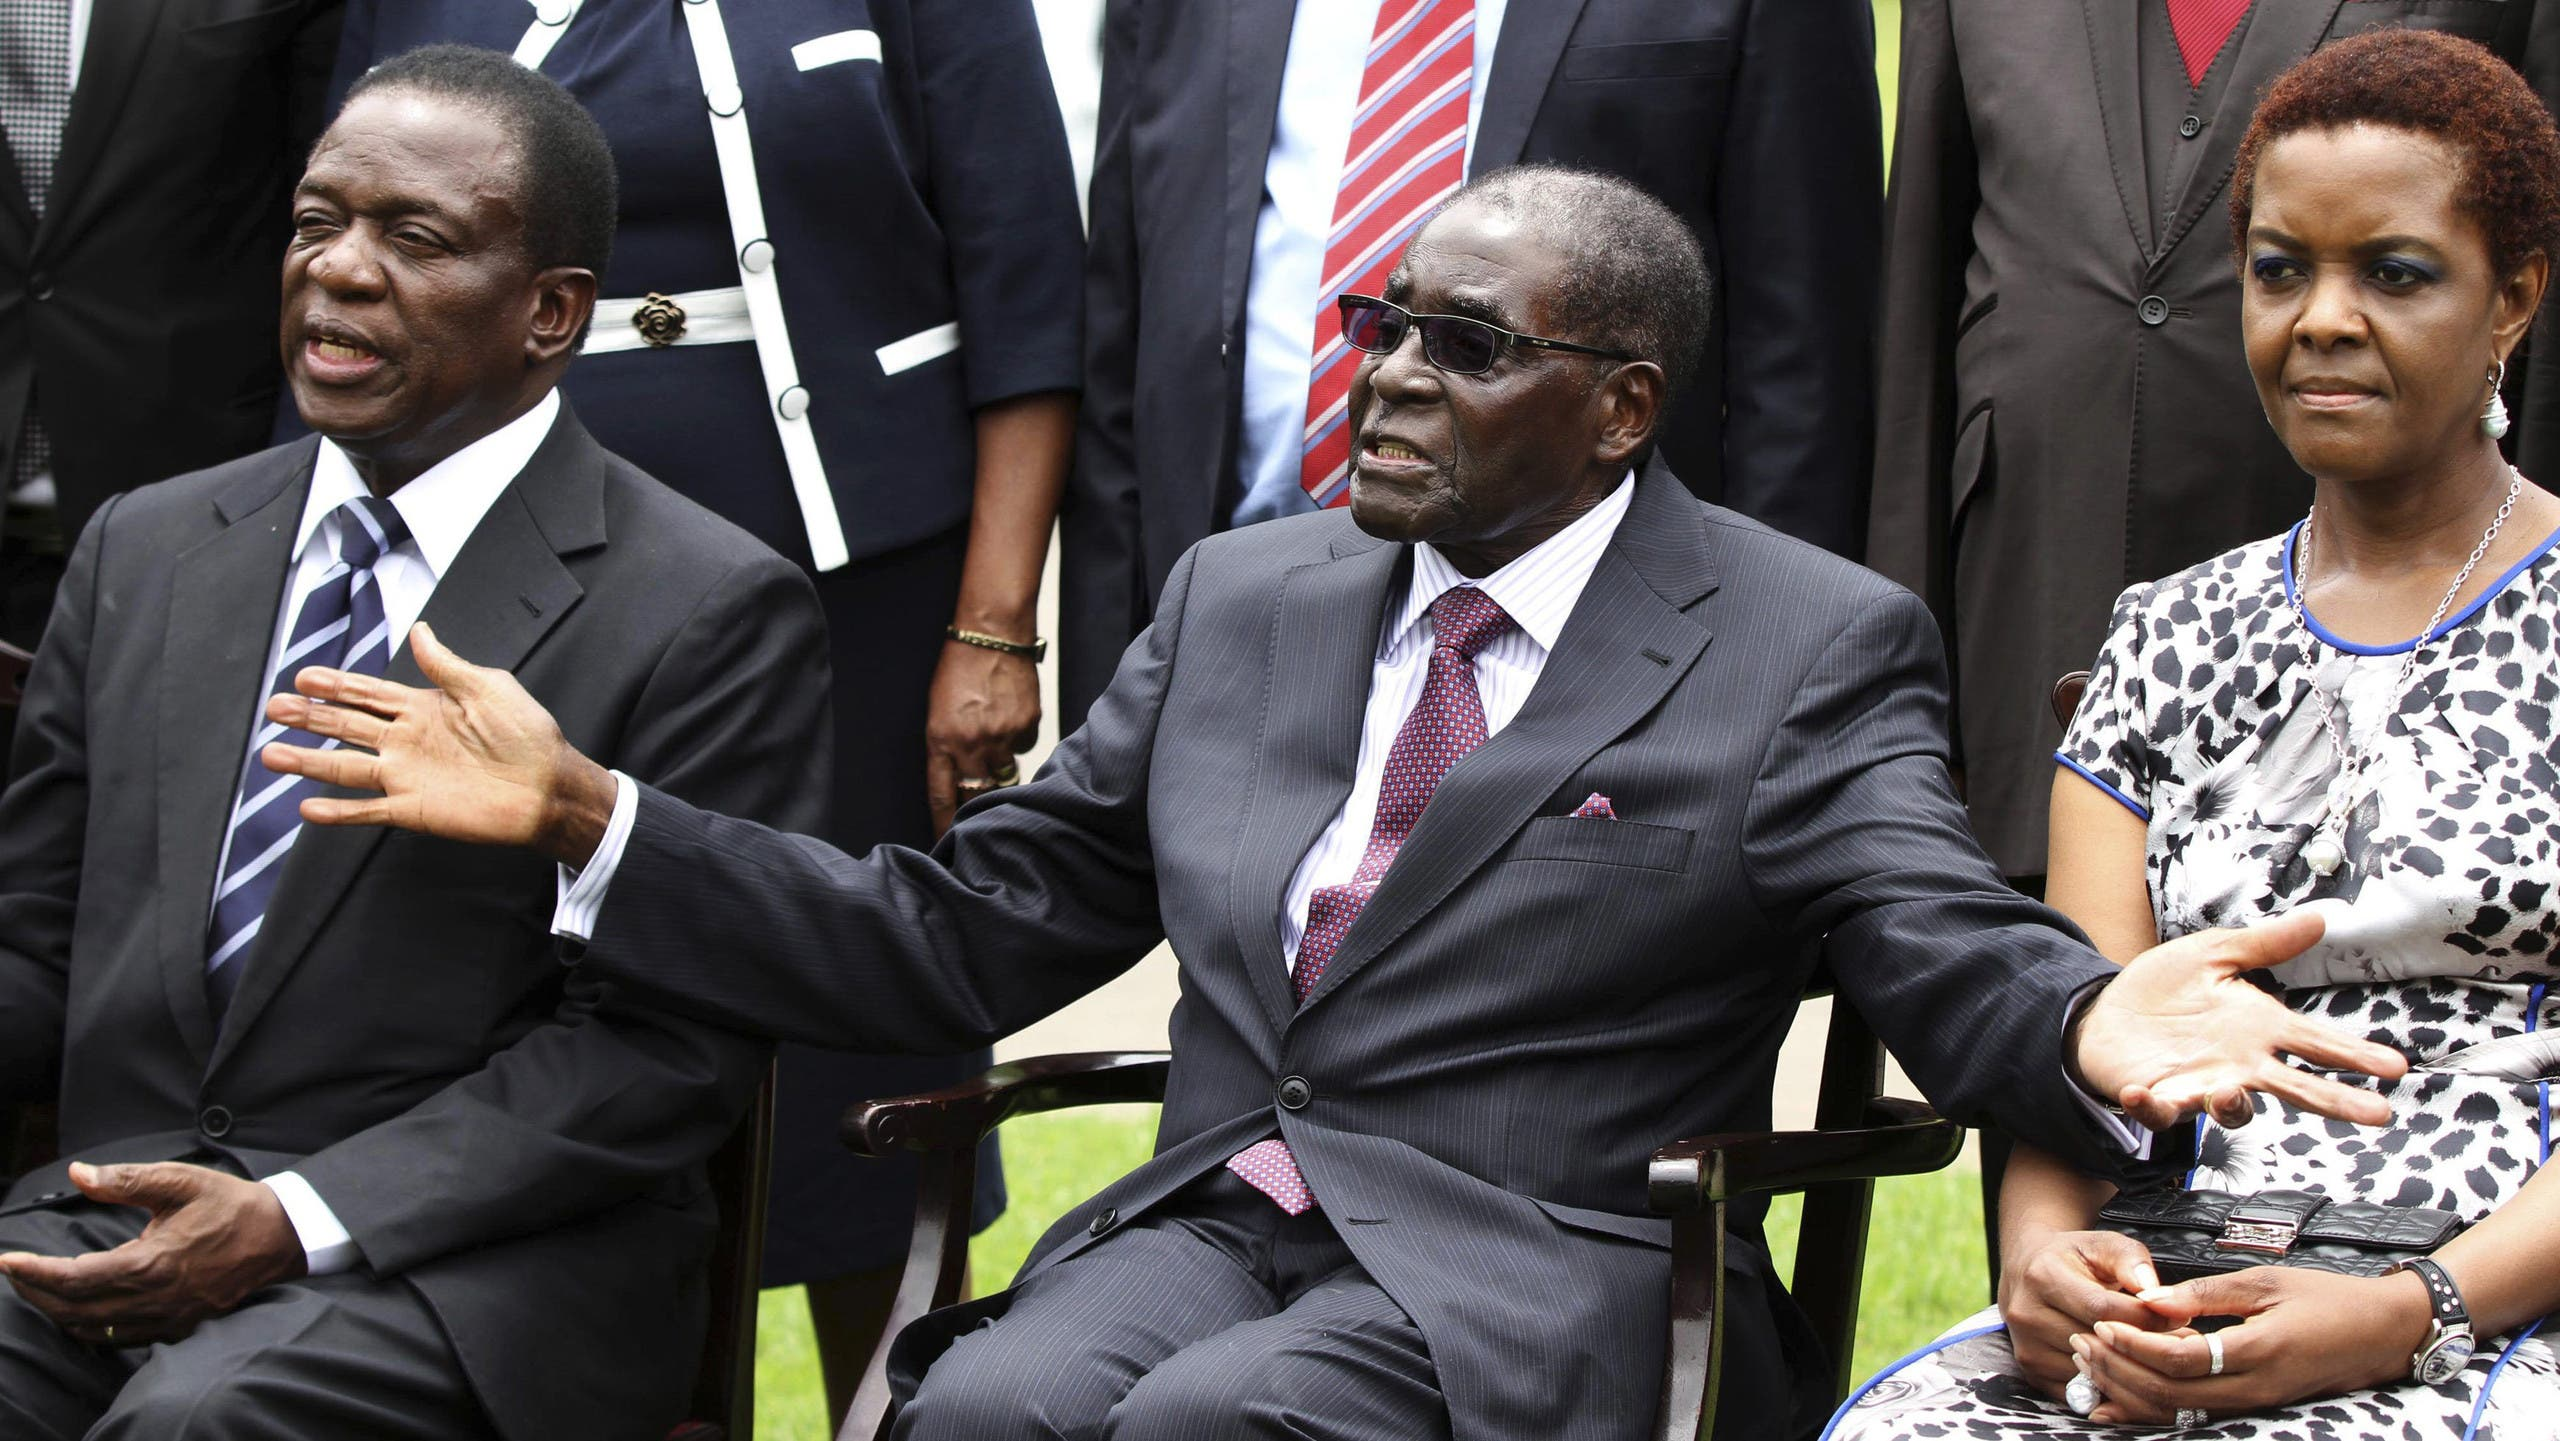 In happier times, perhaps. Zimbabwe's President Robert Mugabe (C) sits with his wife Grace and Emmerson Mnangagwa (L). (Reuters/Philimon Bulawayo)